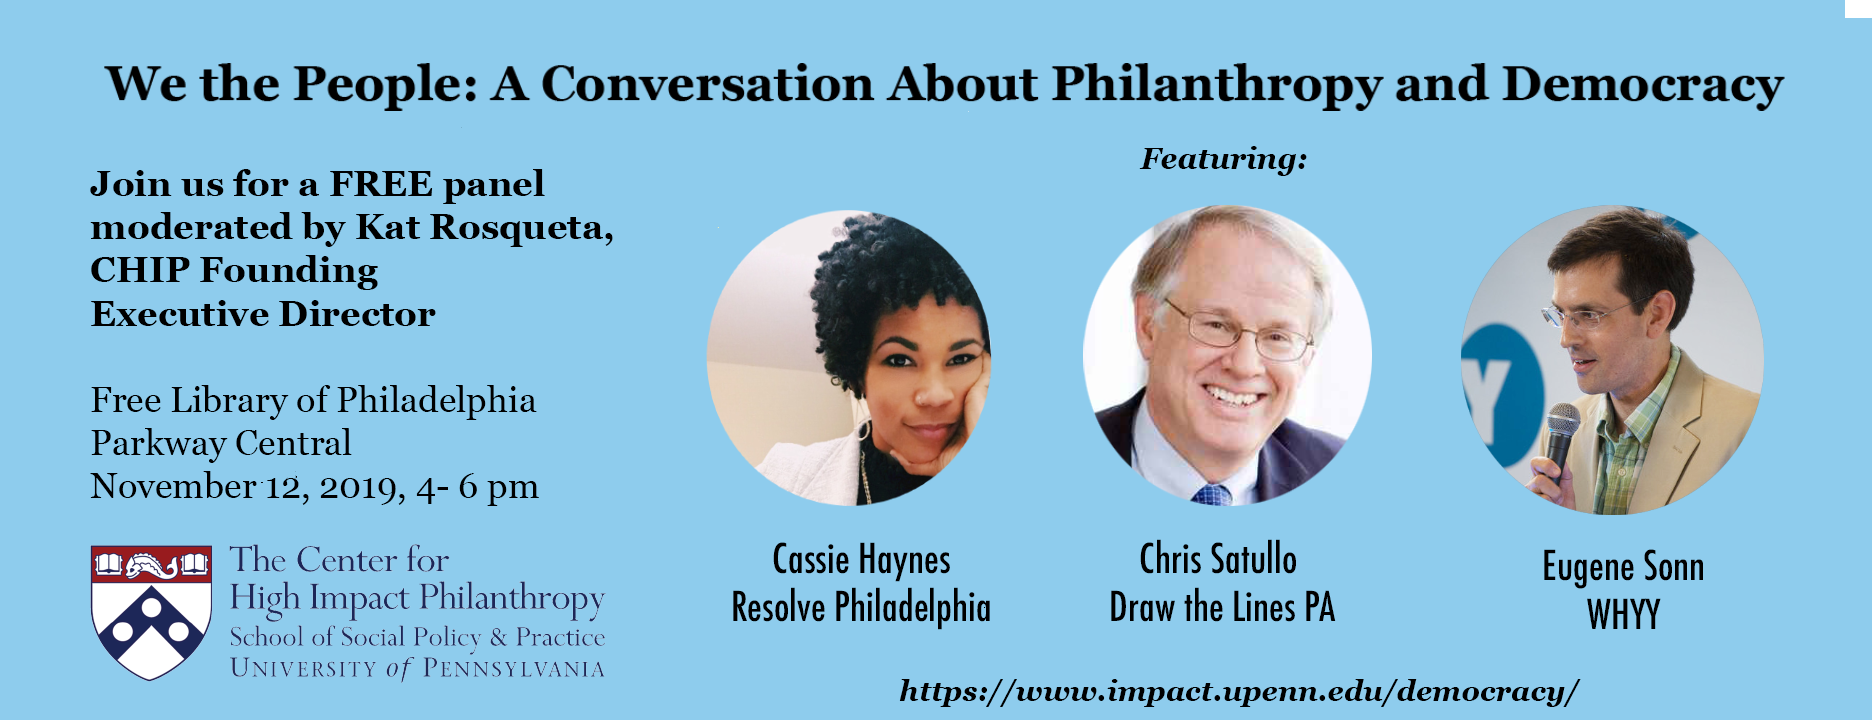 We the People: A Conversation about Philanthropy and Democracy